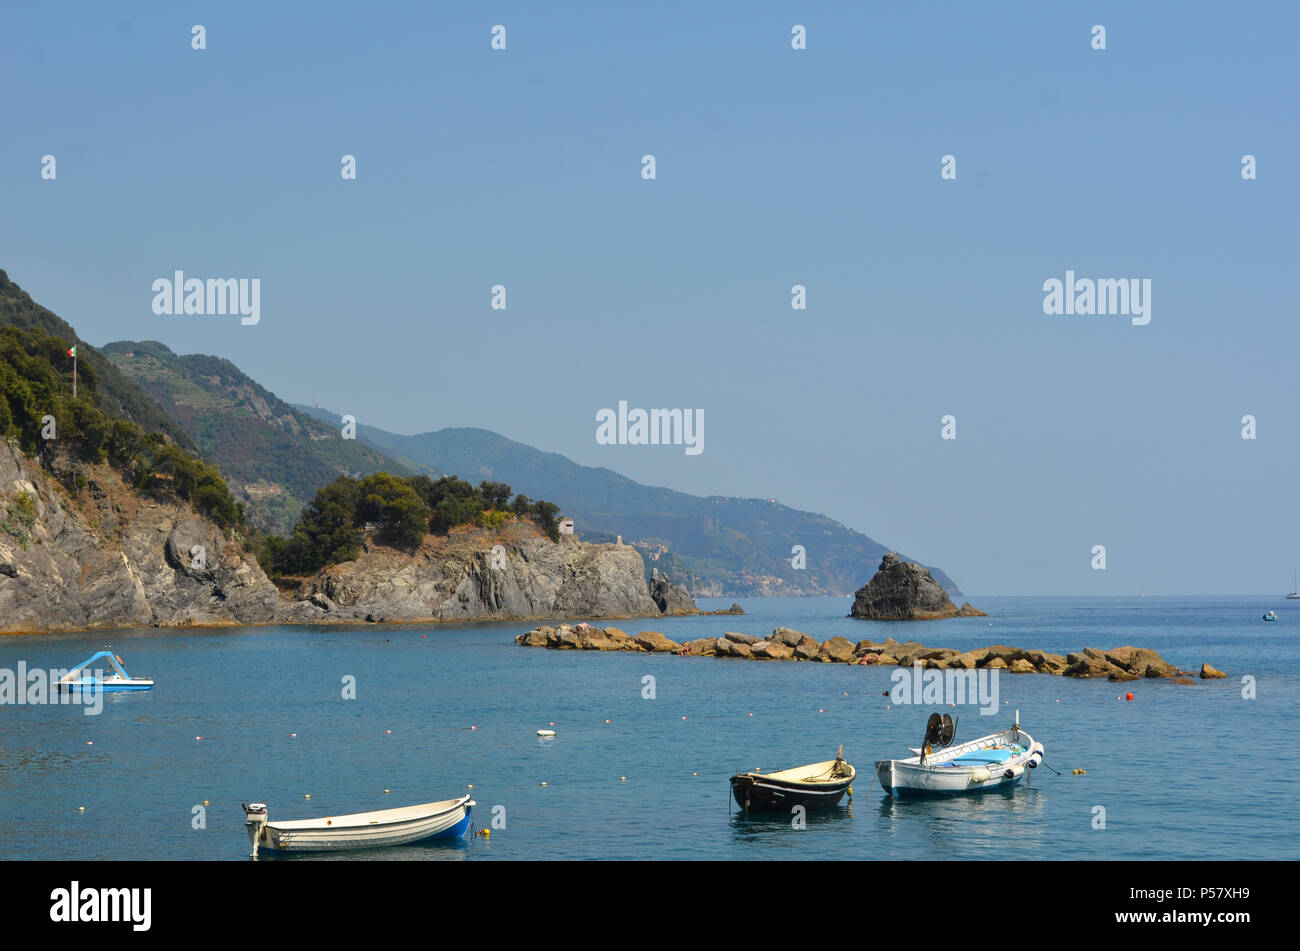 Small boats with outboard motors are moored in a quite bay. A breakwater and a small isalnd are in front of them, and rocky hills to one side. the sky - Stock Image